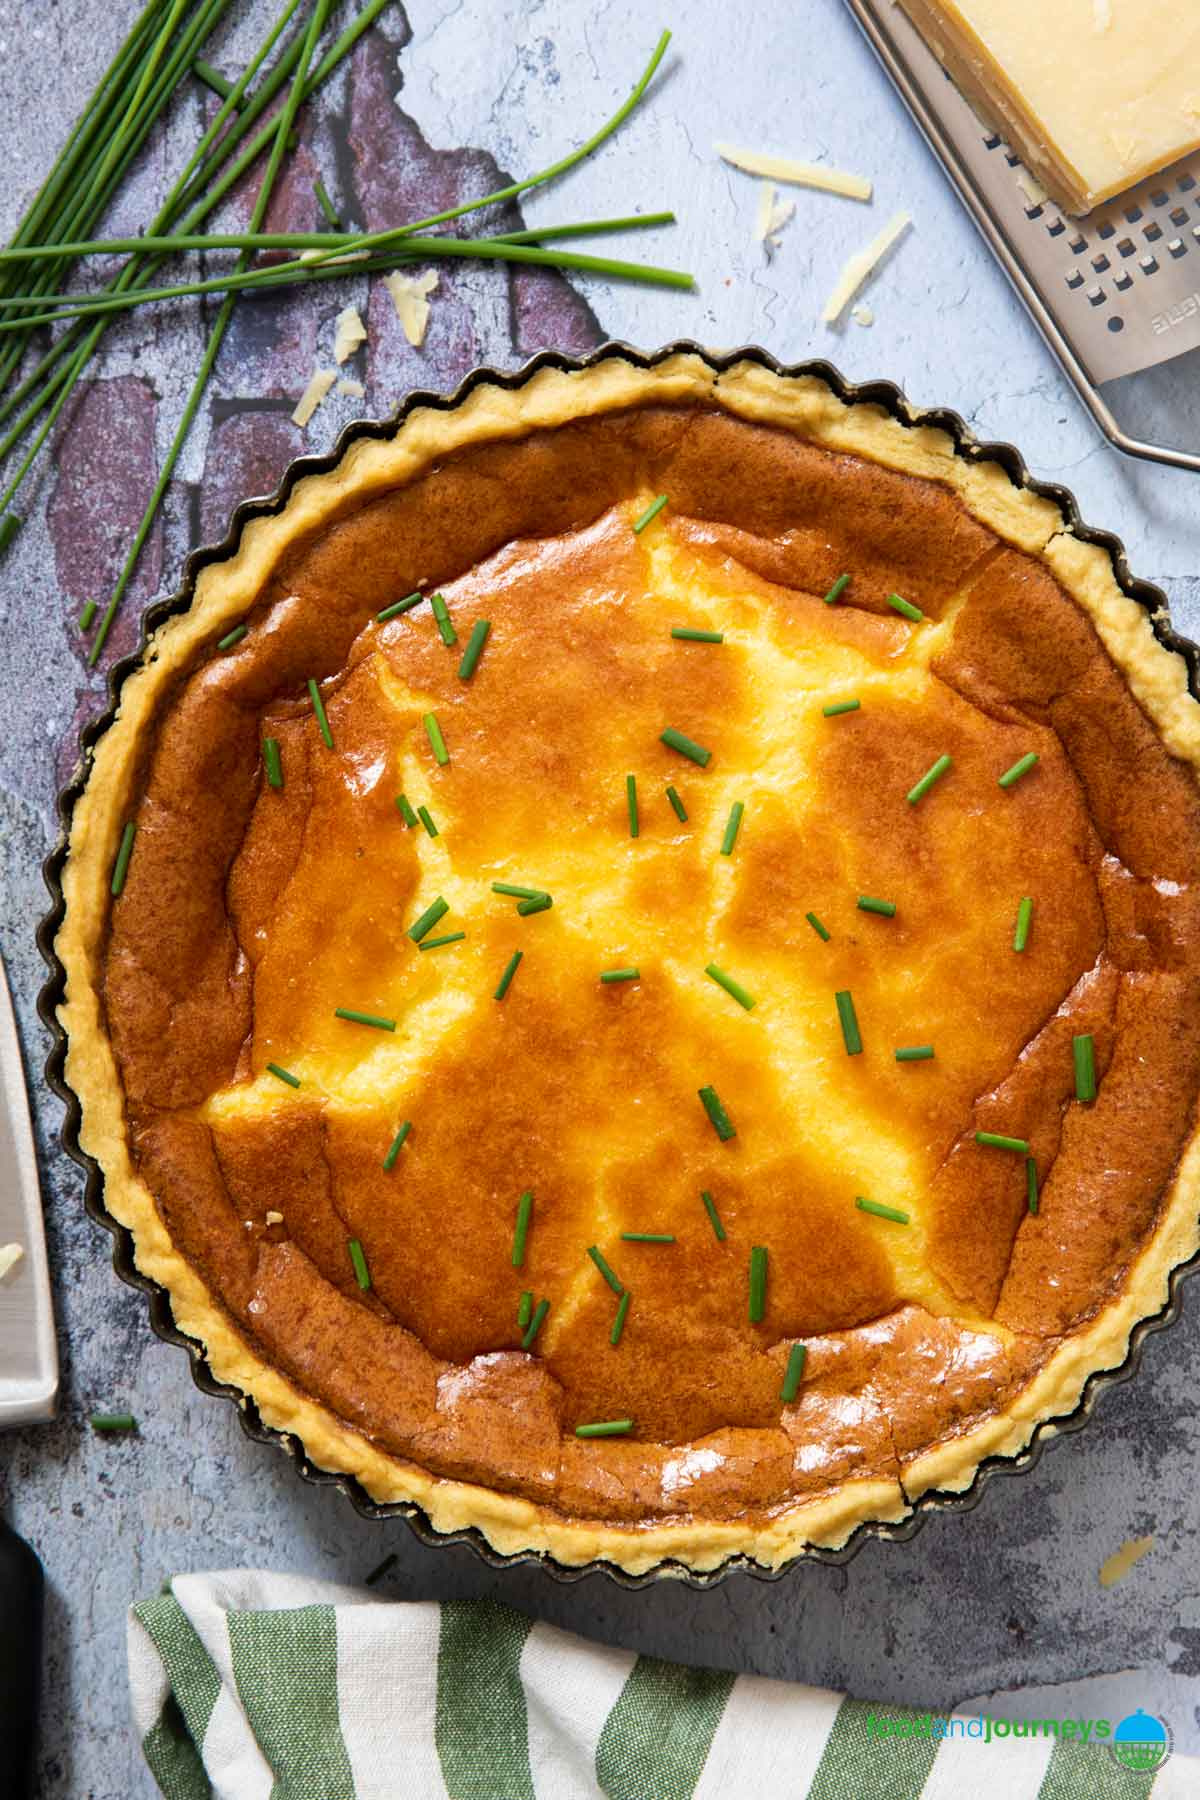 An overhead shot of a newly baked Swedish Cheese Pie, with grated cheese on the side.